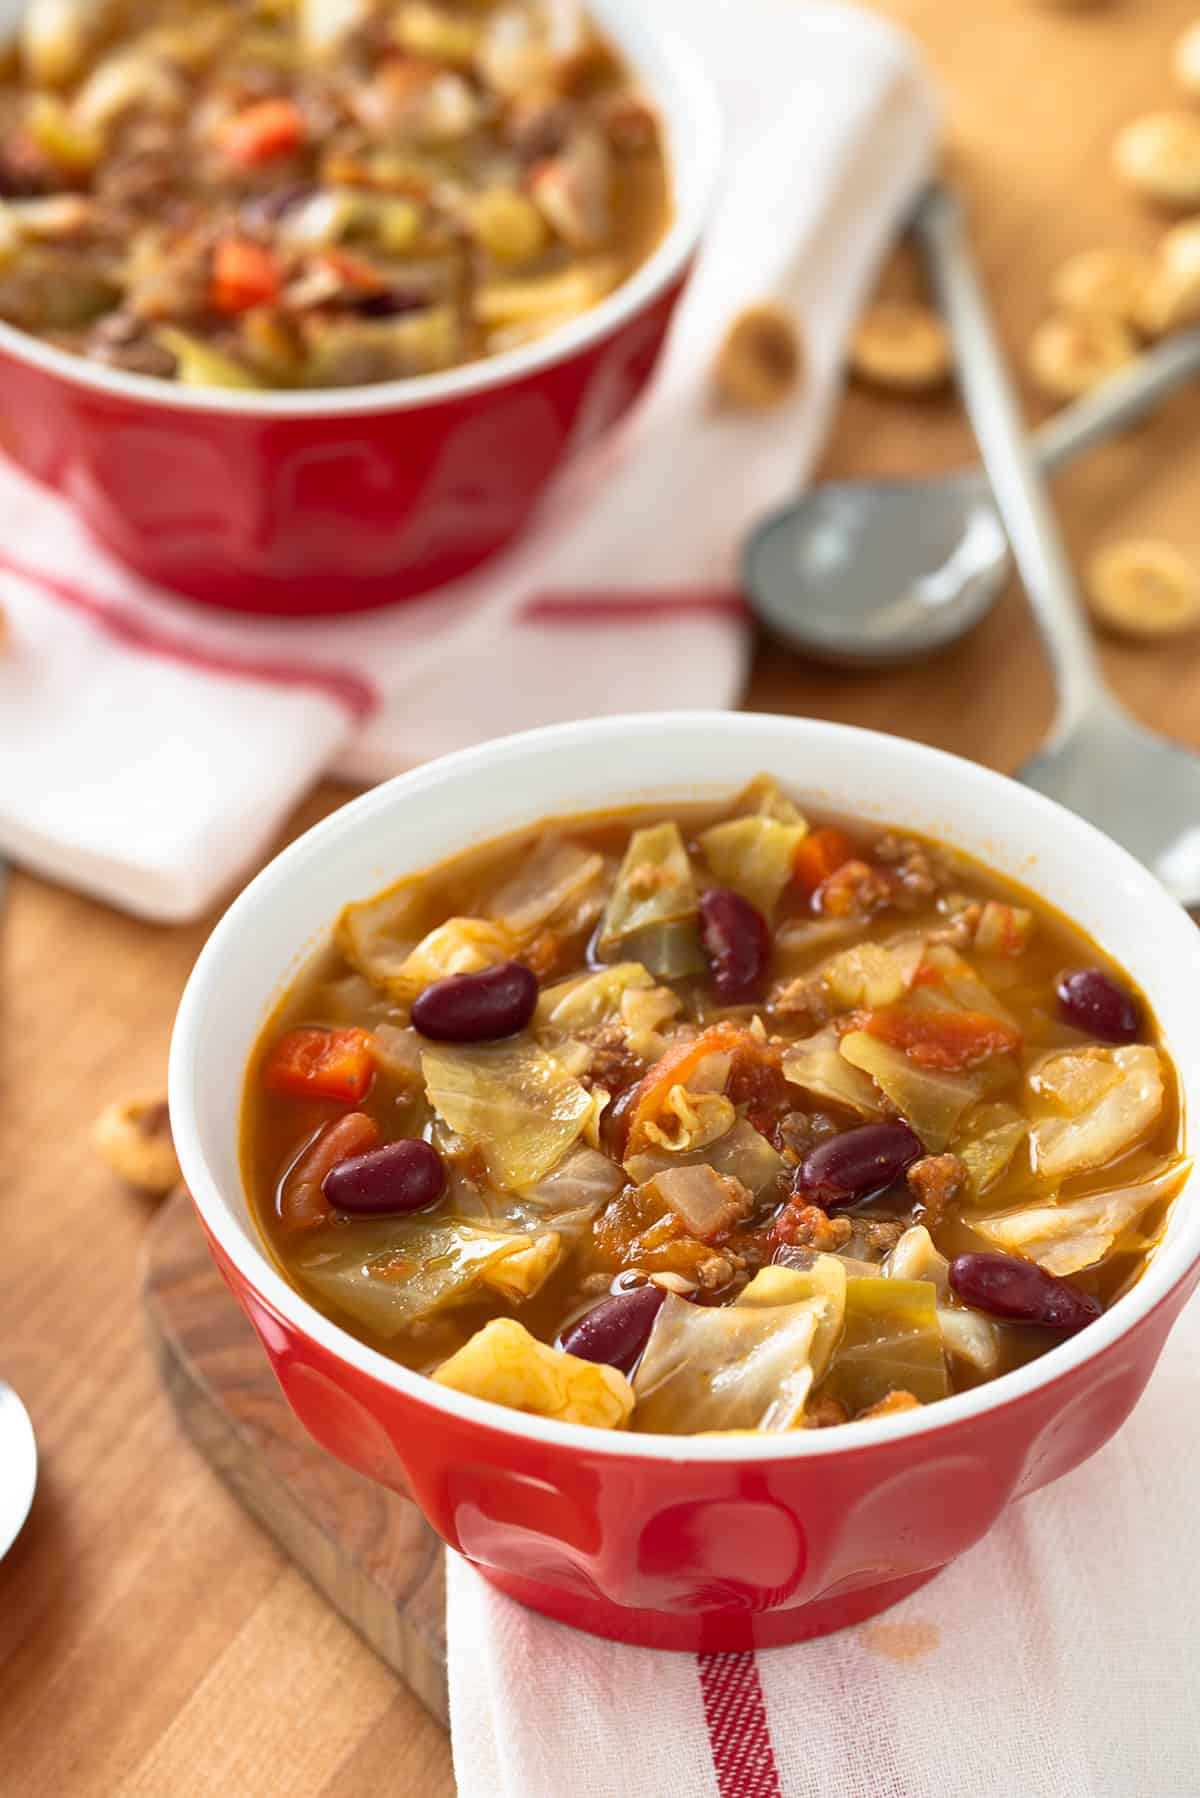 Cabbage Beef Soup in a red bowl on wood top with crackers.